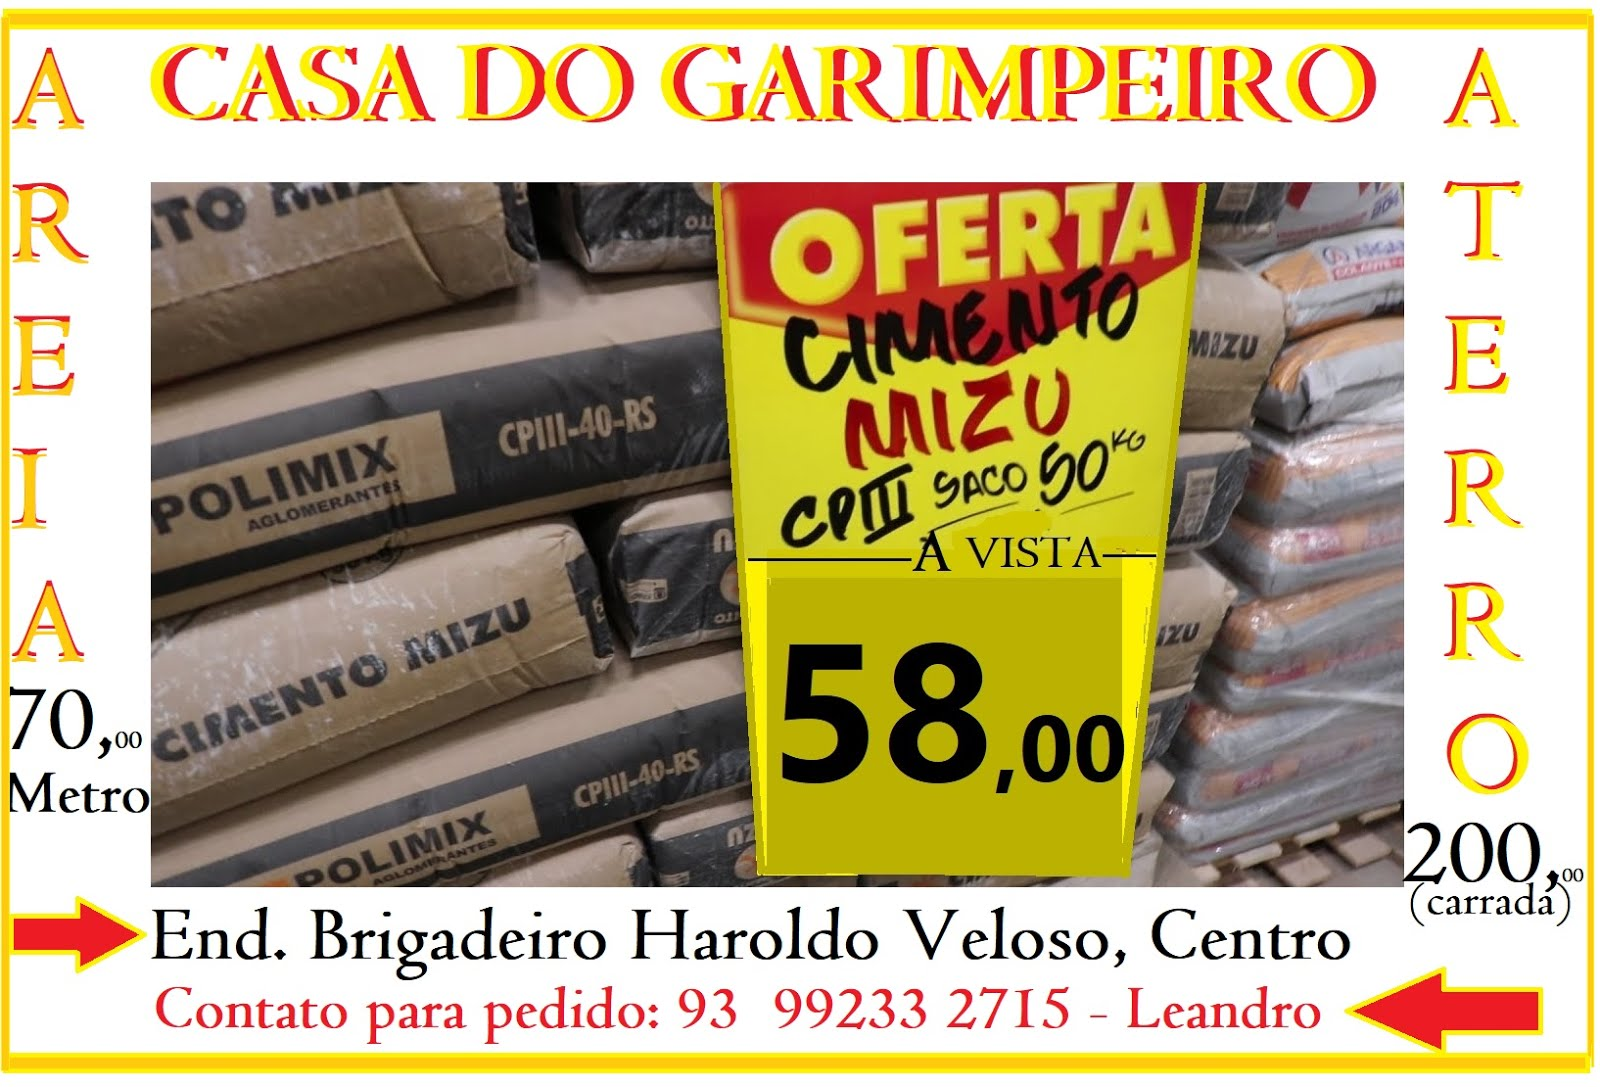 ==== CASA DO GARIMPEIRO ====